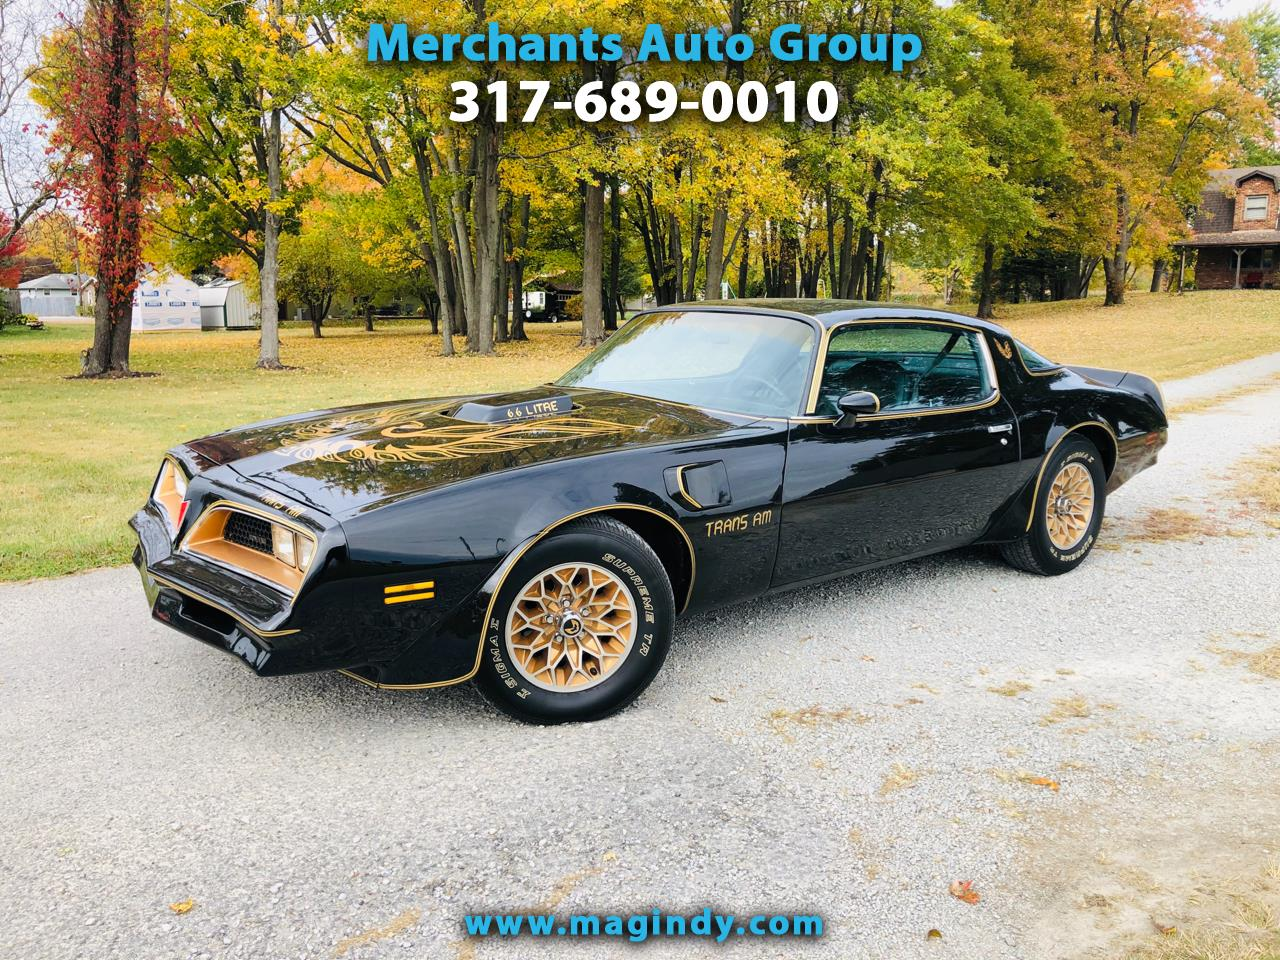 1977 Pontiac Trans Am Golden Eagle